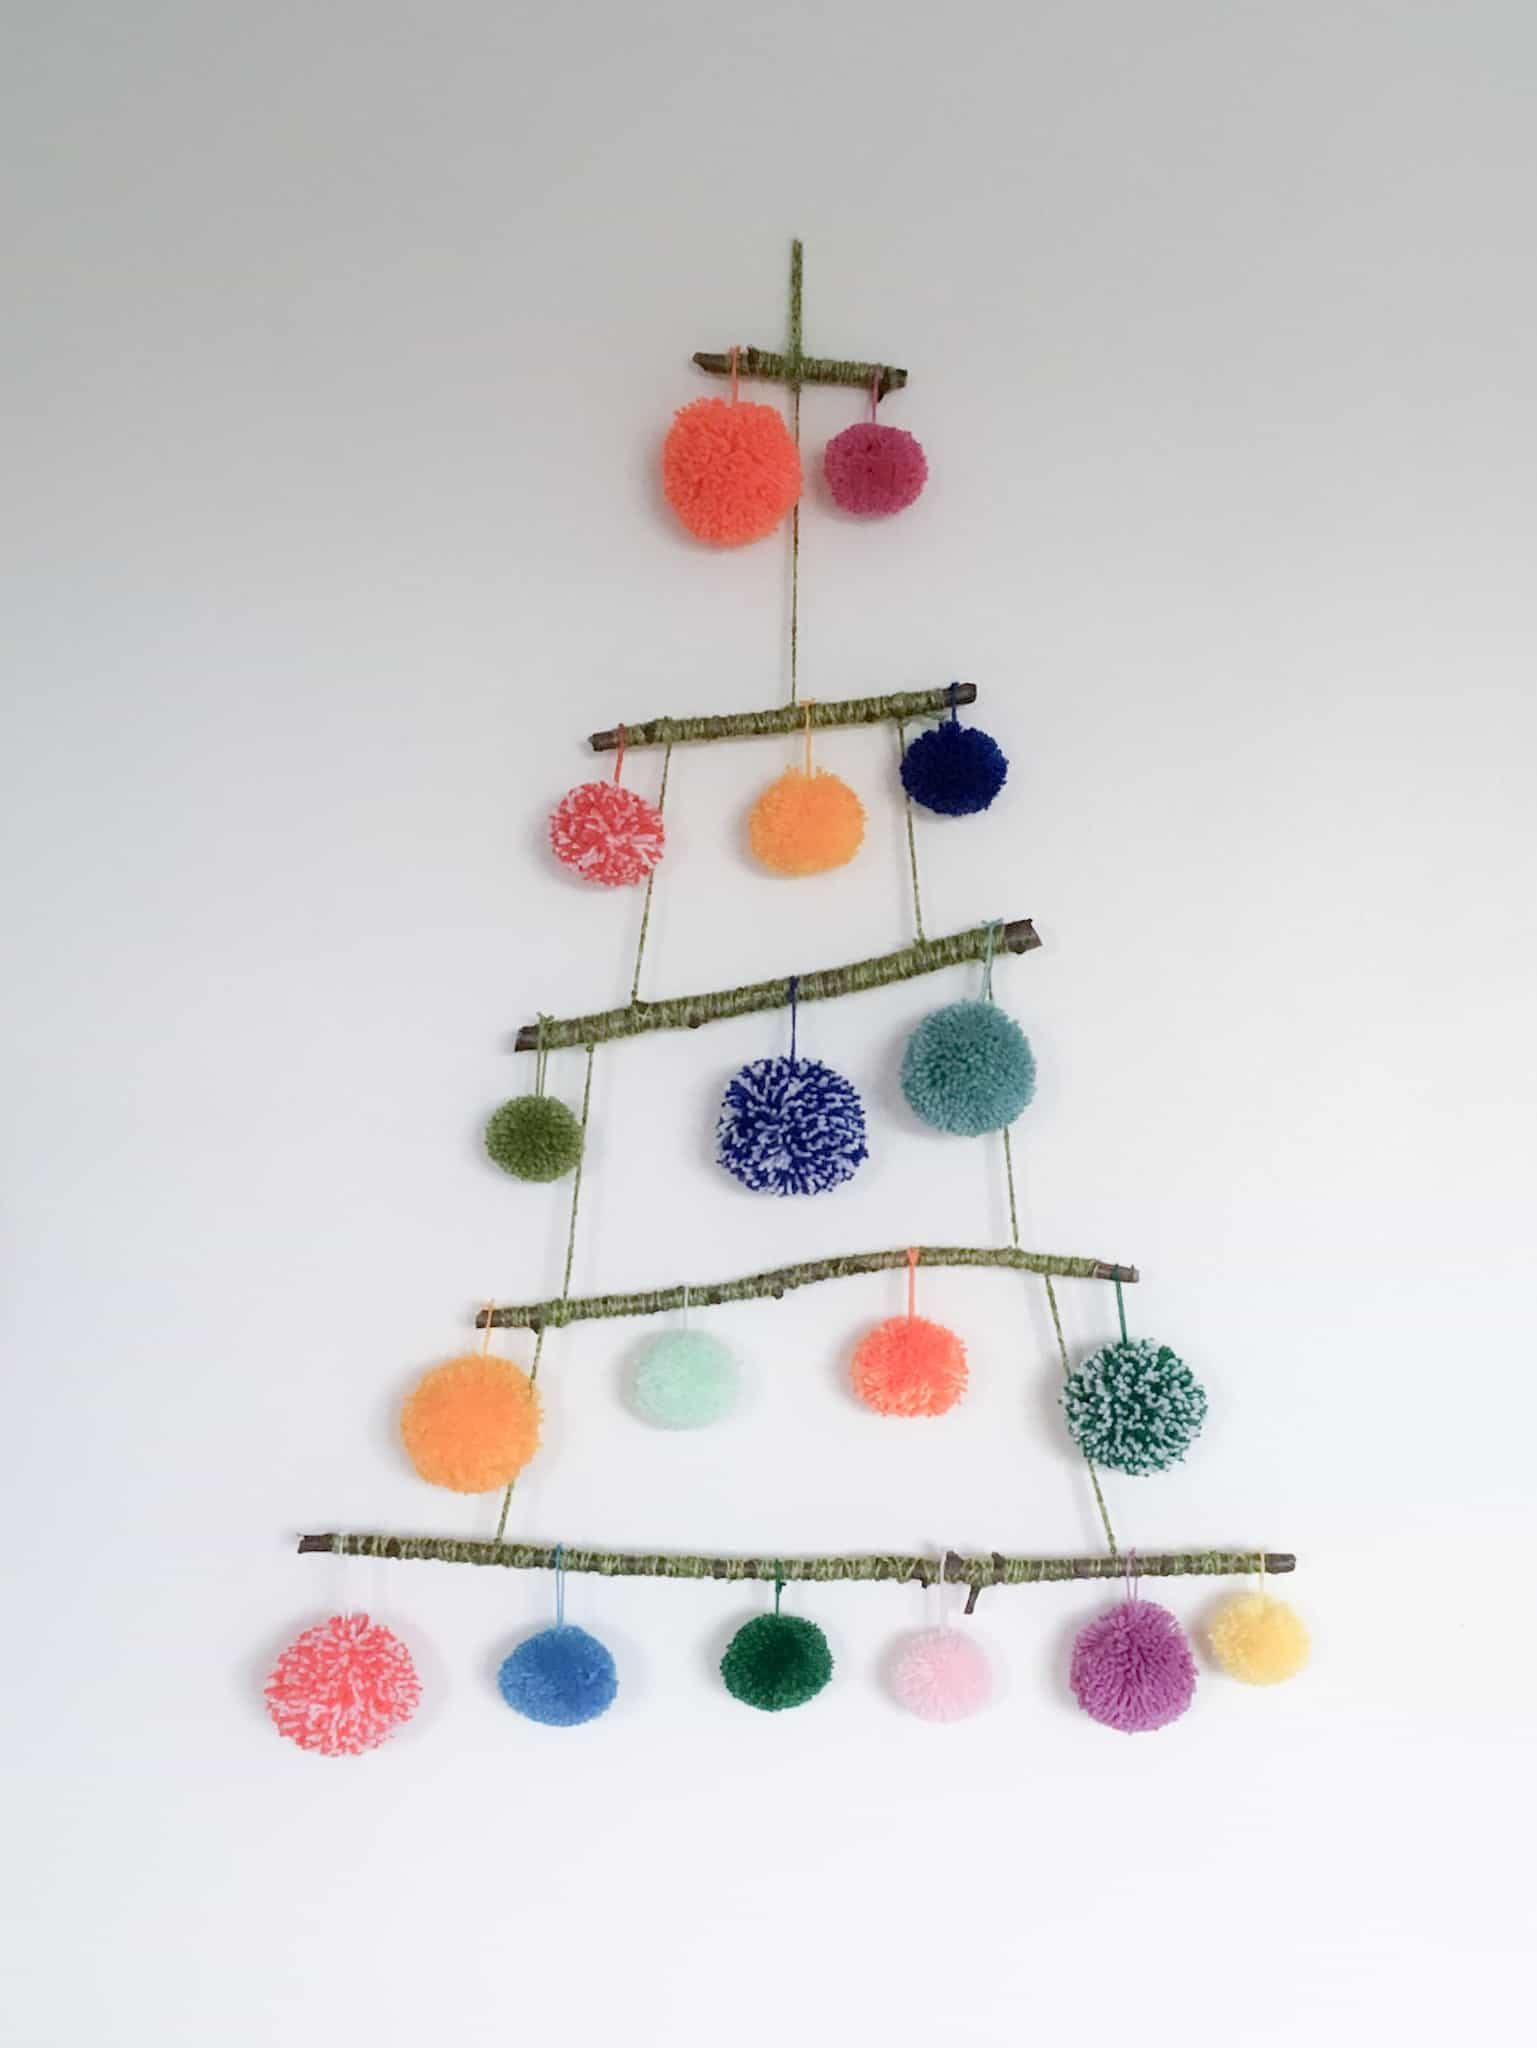 Coloured pom poms hanging from horizontal sticks to make an alternative christmas tree or wall decoration